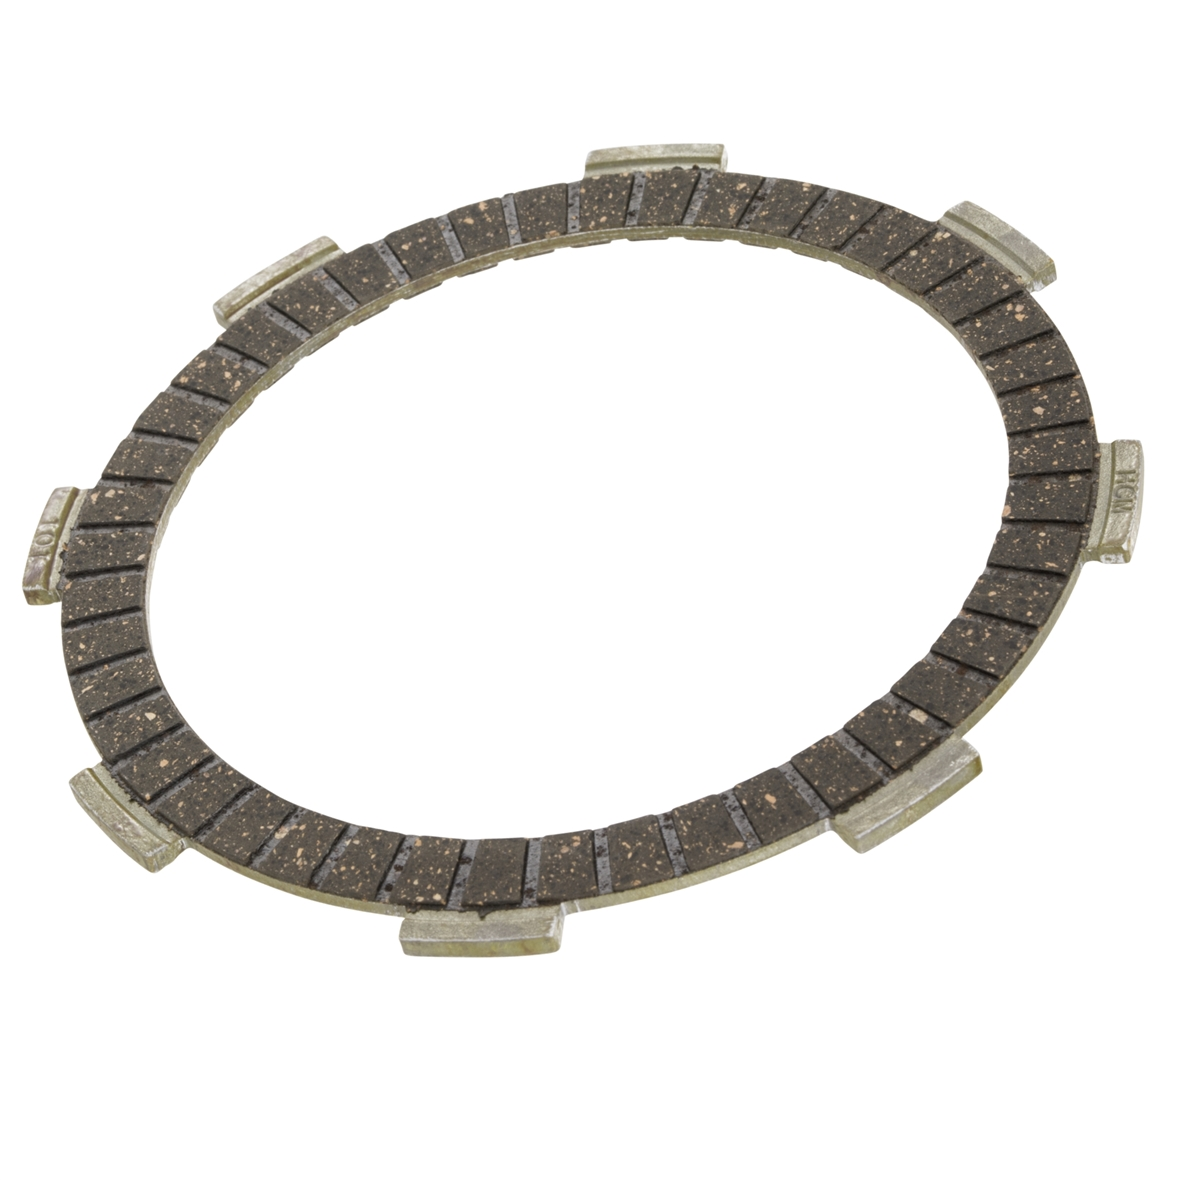 Product Image for 'Clutch Friction Plate LMLTitle'